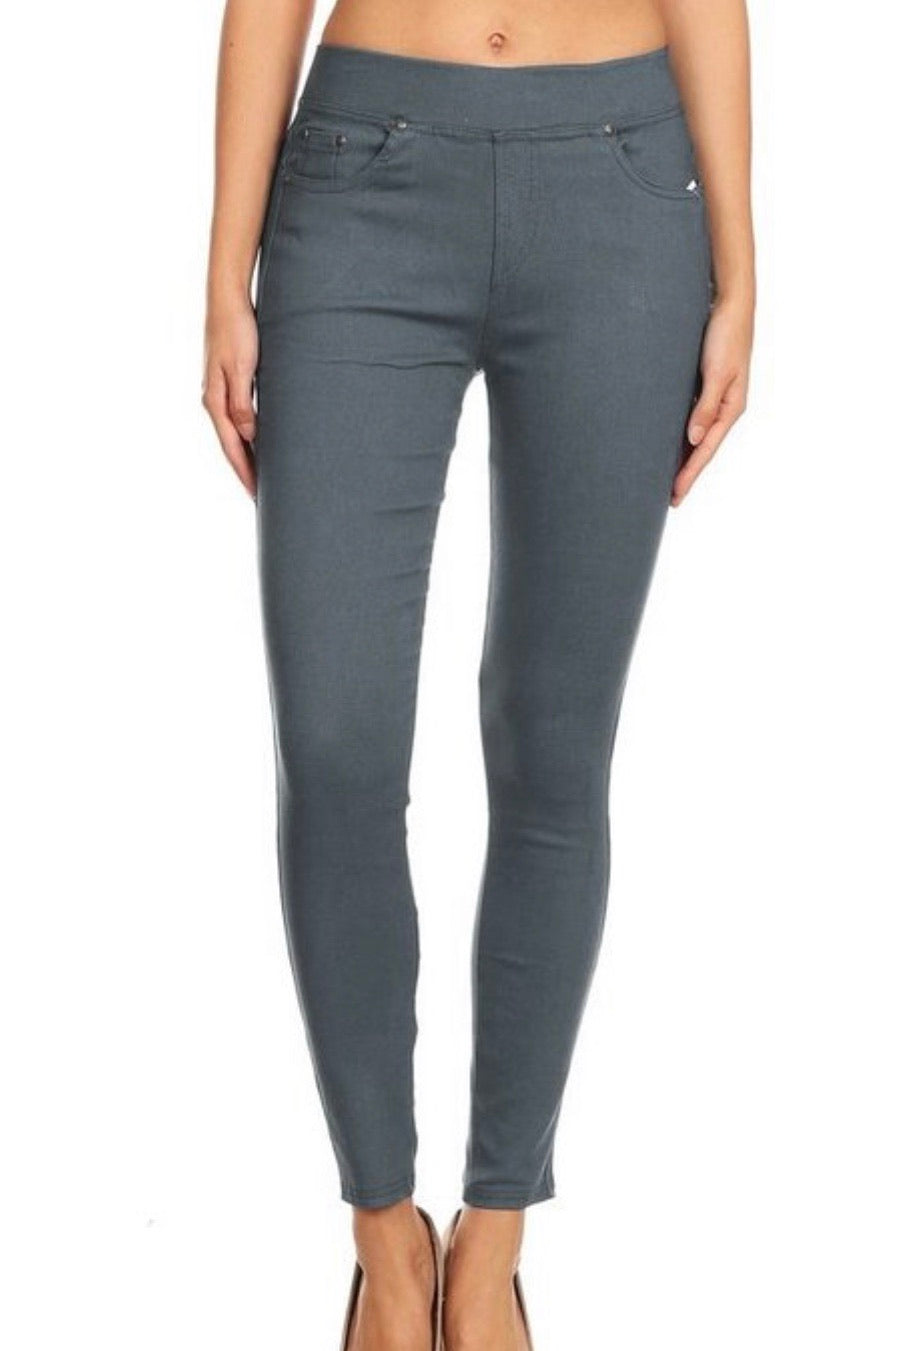 Freeland Jeggings Army Gray